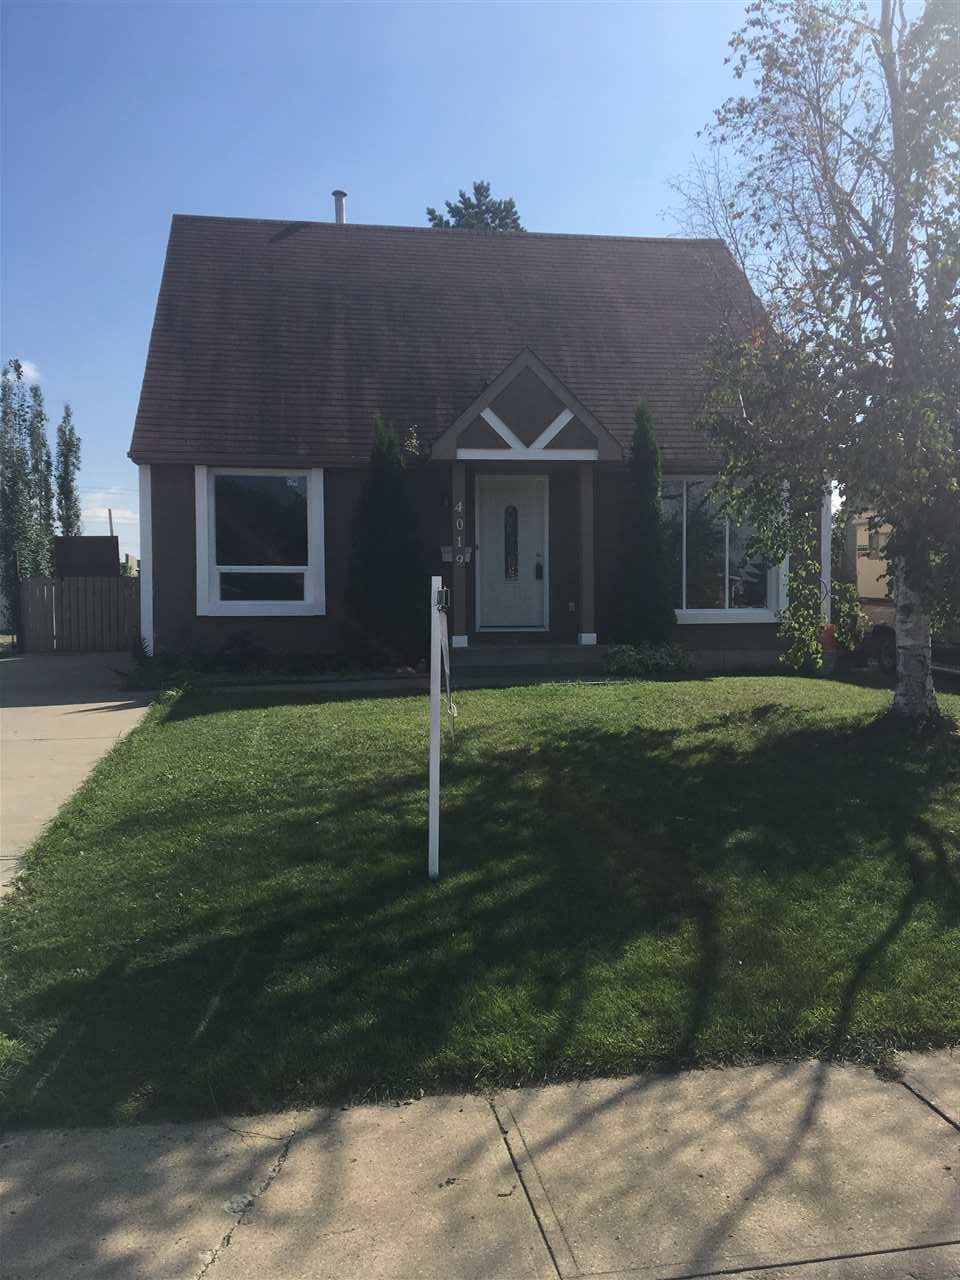 Main Photo: 4019 10 Avenue in Edmonton: Zone 29 House for sale : MLS® # E4076496